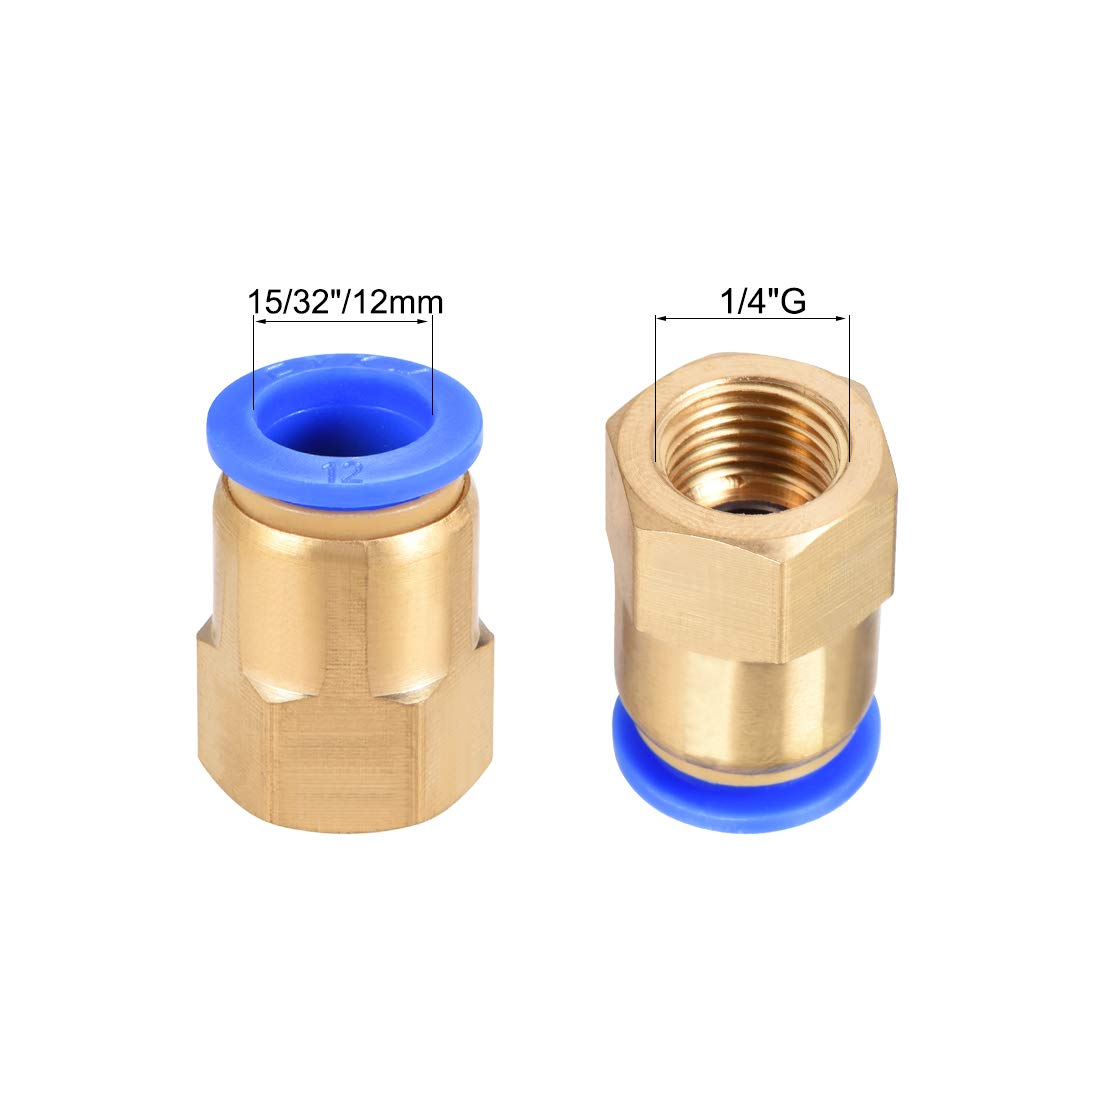 uxcell Straight Pneumatic Push to Connect Female Quick Fitting Adapter 8mm or 5//16 Tube OD x 1//2 G